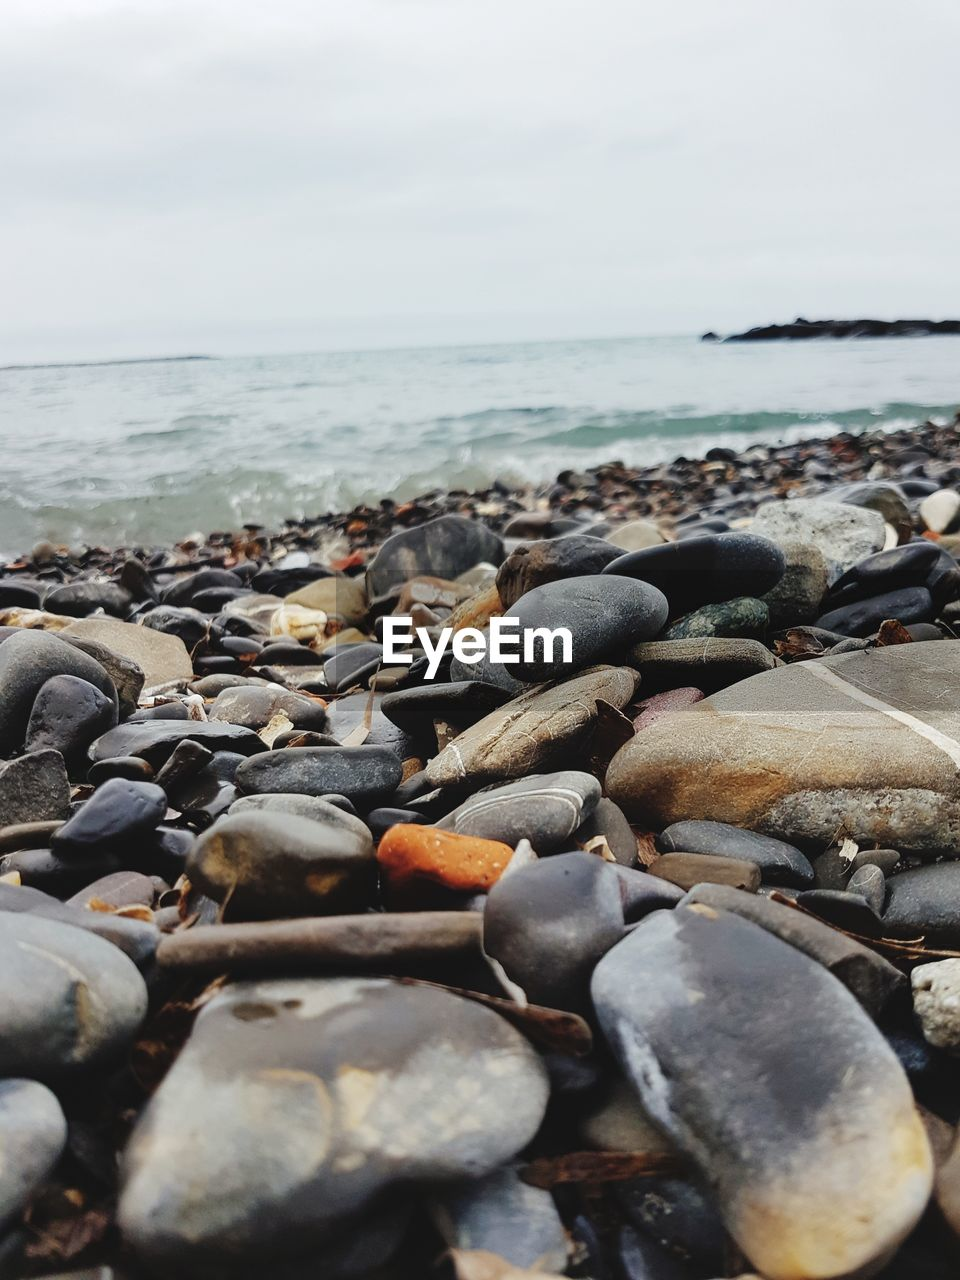 sea, water, beach, land, rock, solid, beauty in nature, sky, scenics - nature, stone, tranquility, nature, horizon over water, day, stone - object, rock - object, pebble, horizon, tranquil scene, no people, surface level, outdoors, pollution, rocky coastline